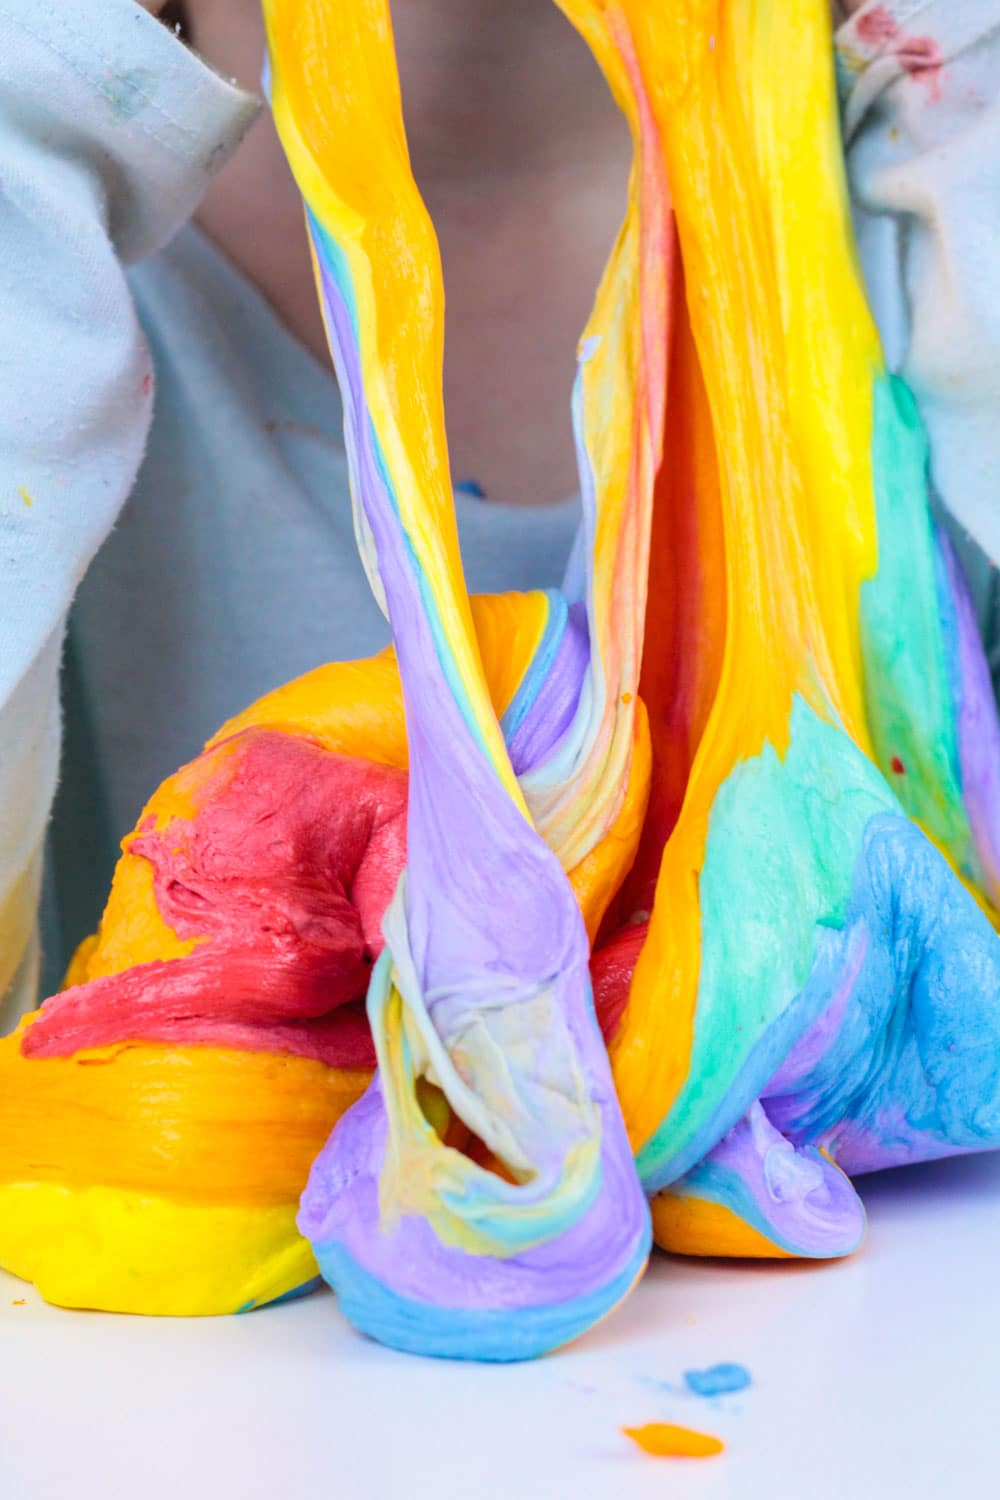 Slime lovers will adore this fluffy version of rainbow slime! This fluffy rainbow slime recipe is super easy to make and it's less messy than many other slime recipes out there. Rainbow slime that is fluffy is fun and you'll learn how to make fluffy rainbow slime in no time!